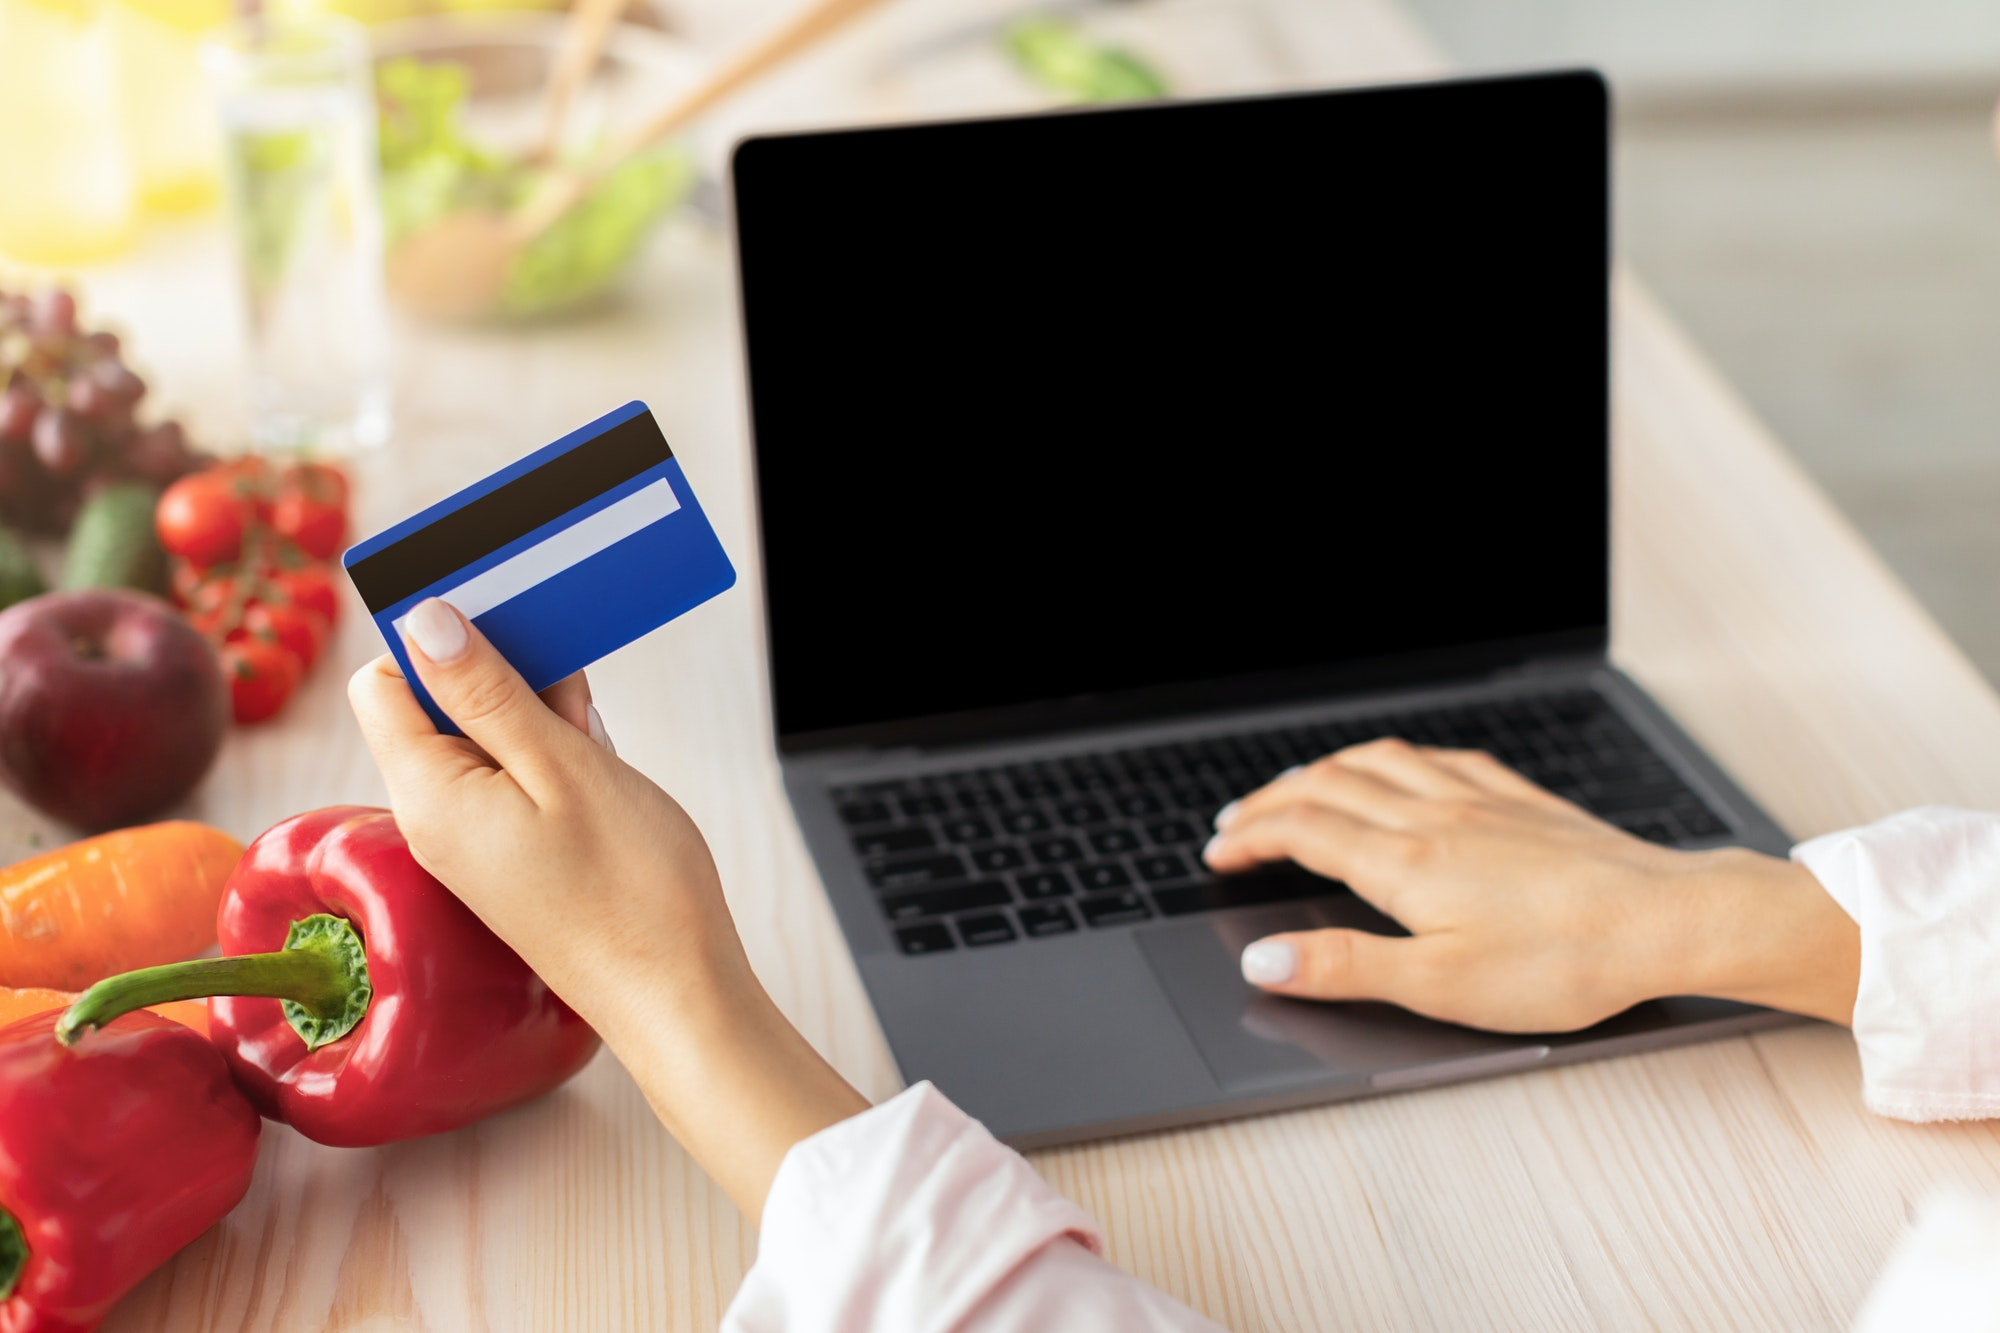 Woman using laptop with in kitchen, holding credit card